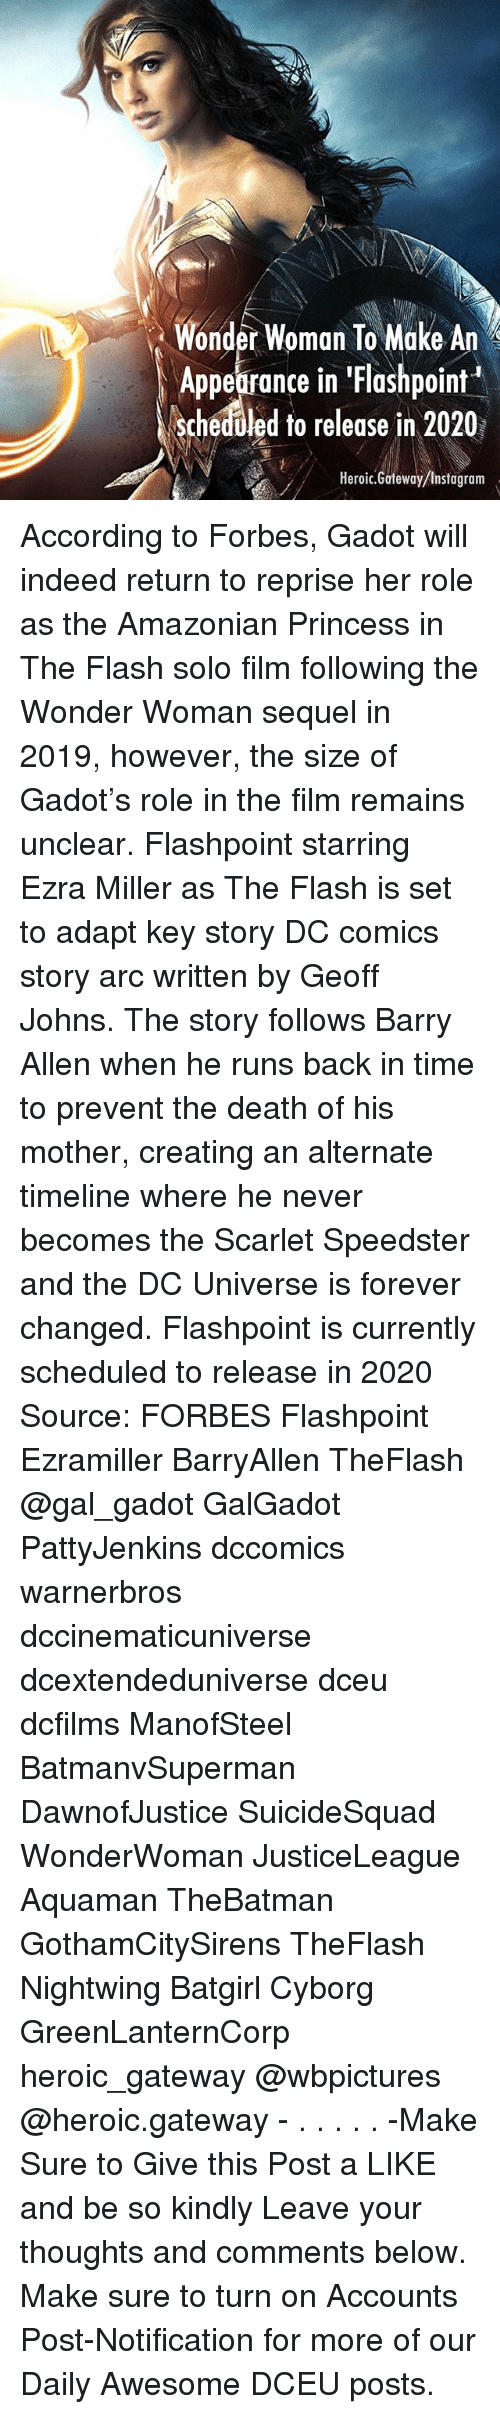 Instagram, Memes, and Death: Wonder Woman To Make An  Appearance in 'Flashpoint  scheduled to release in 2020  Heroic.Garteway /Instagram According to Forbes, Gadot will indeed return to reprise her role as the Amazonian Princess in The Flash solo film following the Wonder Woman sequel in 2019, however, the size of Gadot's role in the film remains unclear. Flashpoint starring Ezra Miller as The Flash is set to adapt key story DC comics story arc written by Geoff Johns. The story follows Barry Allen when he runs back in time to prevent the death of his mother, creating an alternate timeline where he never becomes the Scarlet Speedster and the DC Universe is forever changed. Flashpoint is currently scheduled to release in 2020 Source: FORBES Flashpoint Ezramiller BarryAllen TheFlash @gal_gadot GalGadot PattyJenkins dccomics warnerbros dccinematicuniverse dcextendeduniverse dceu dcfilms ManofSteel BatmanvSuperman DawnofJustice SuicideSquad WonderWoman JusticeLeague Aquaman TheBatman GothamCitySirens TheFlash Nightwing Batgirl Cyborg GreenLanternCorp heroic_gateway @wbpictures @heroic.gateway - . . . . . -Make Sure to Give this Post a LIKE and be so kindly Leave your thoughts and comments below. Make sure to turn on Accounts Post-Notification for more of our Daily Awesome DCEU posts.